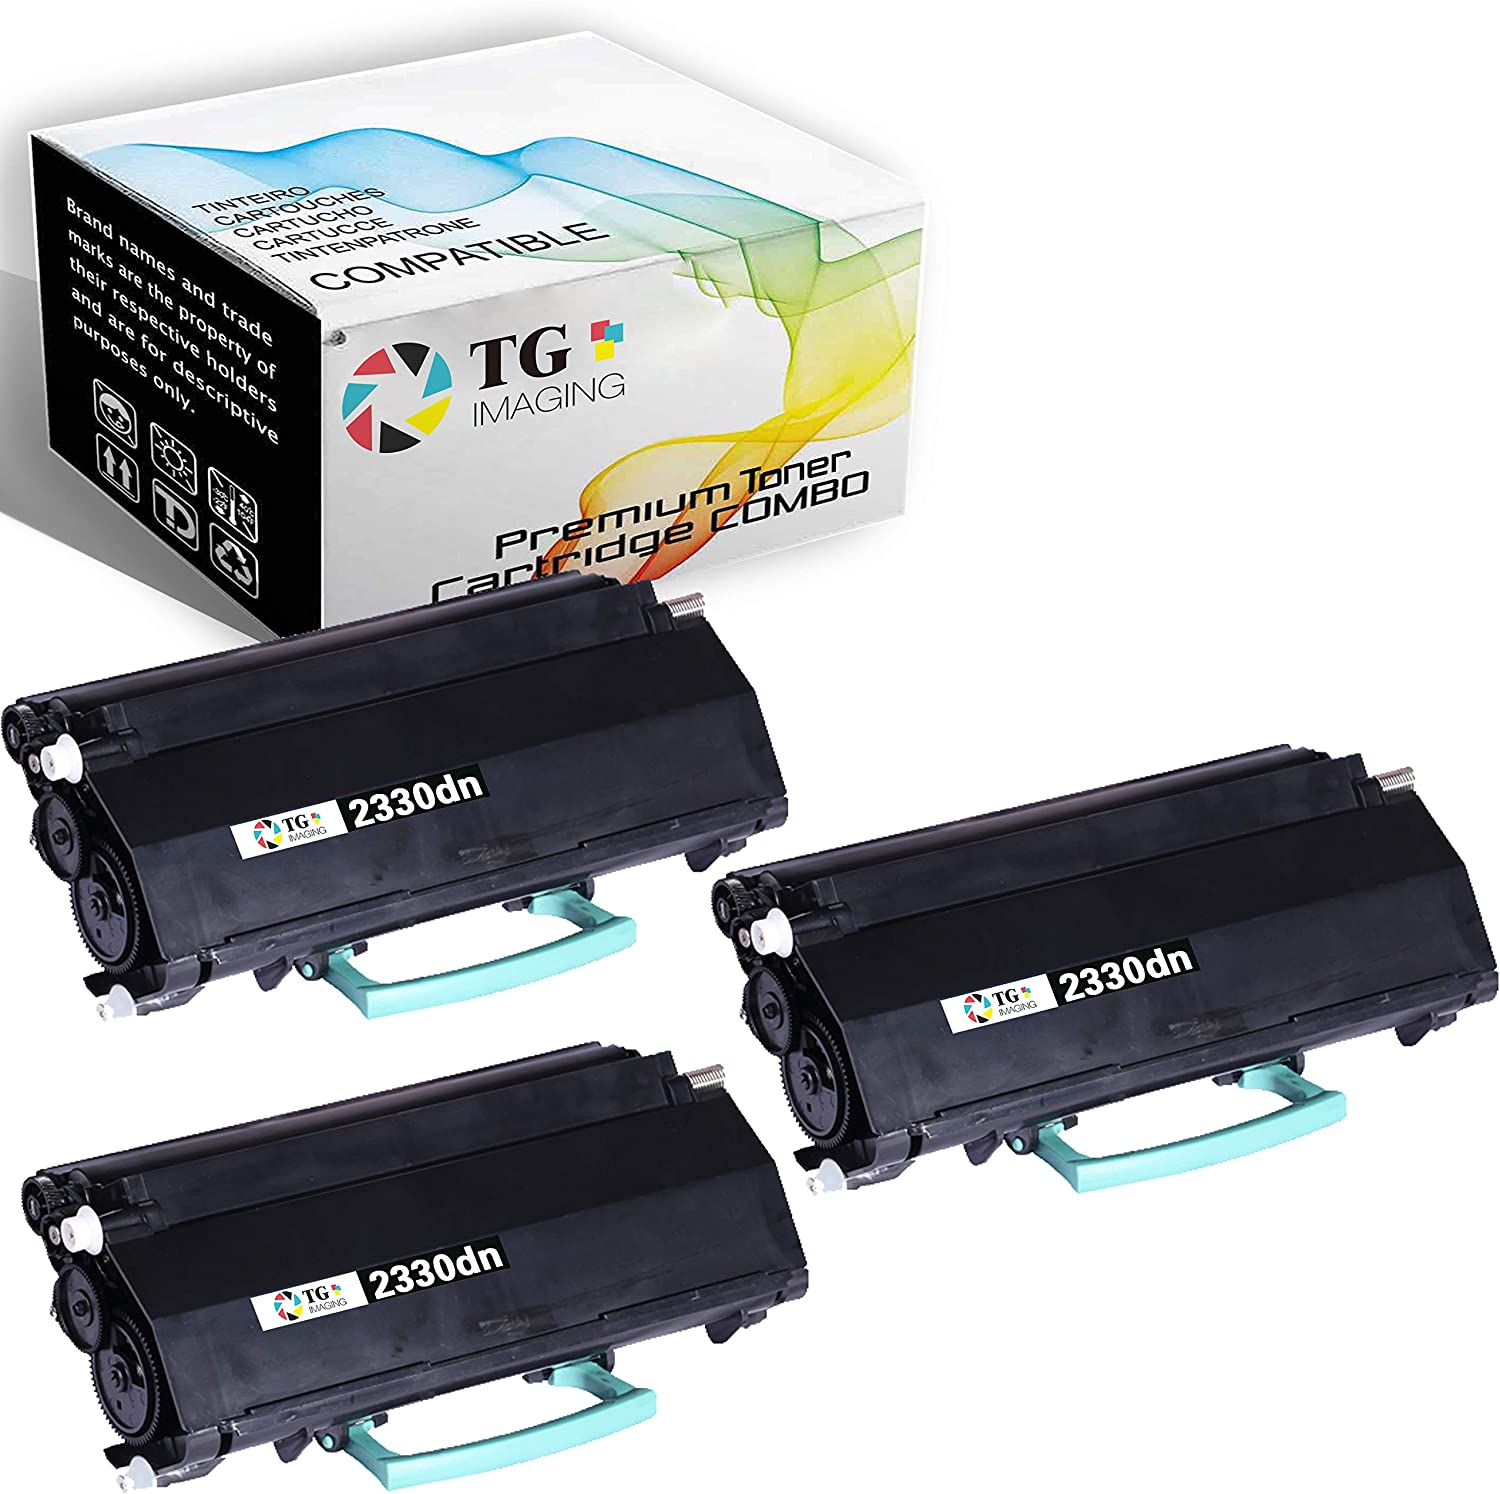 3-Pack Compatible Dell 2330dn Toner Cartridge 2350dn (TG Imaging) Used for Dell 2330dn 2350dn Printers (PK941 330-2650 2330)